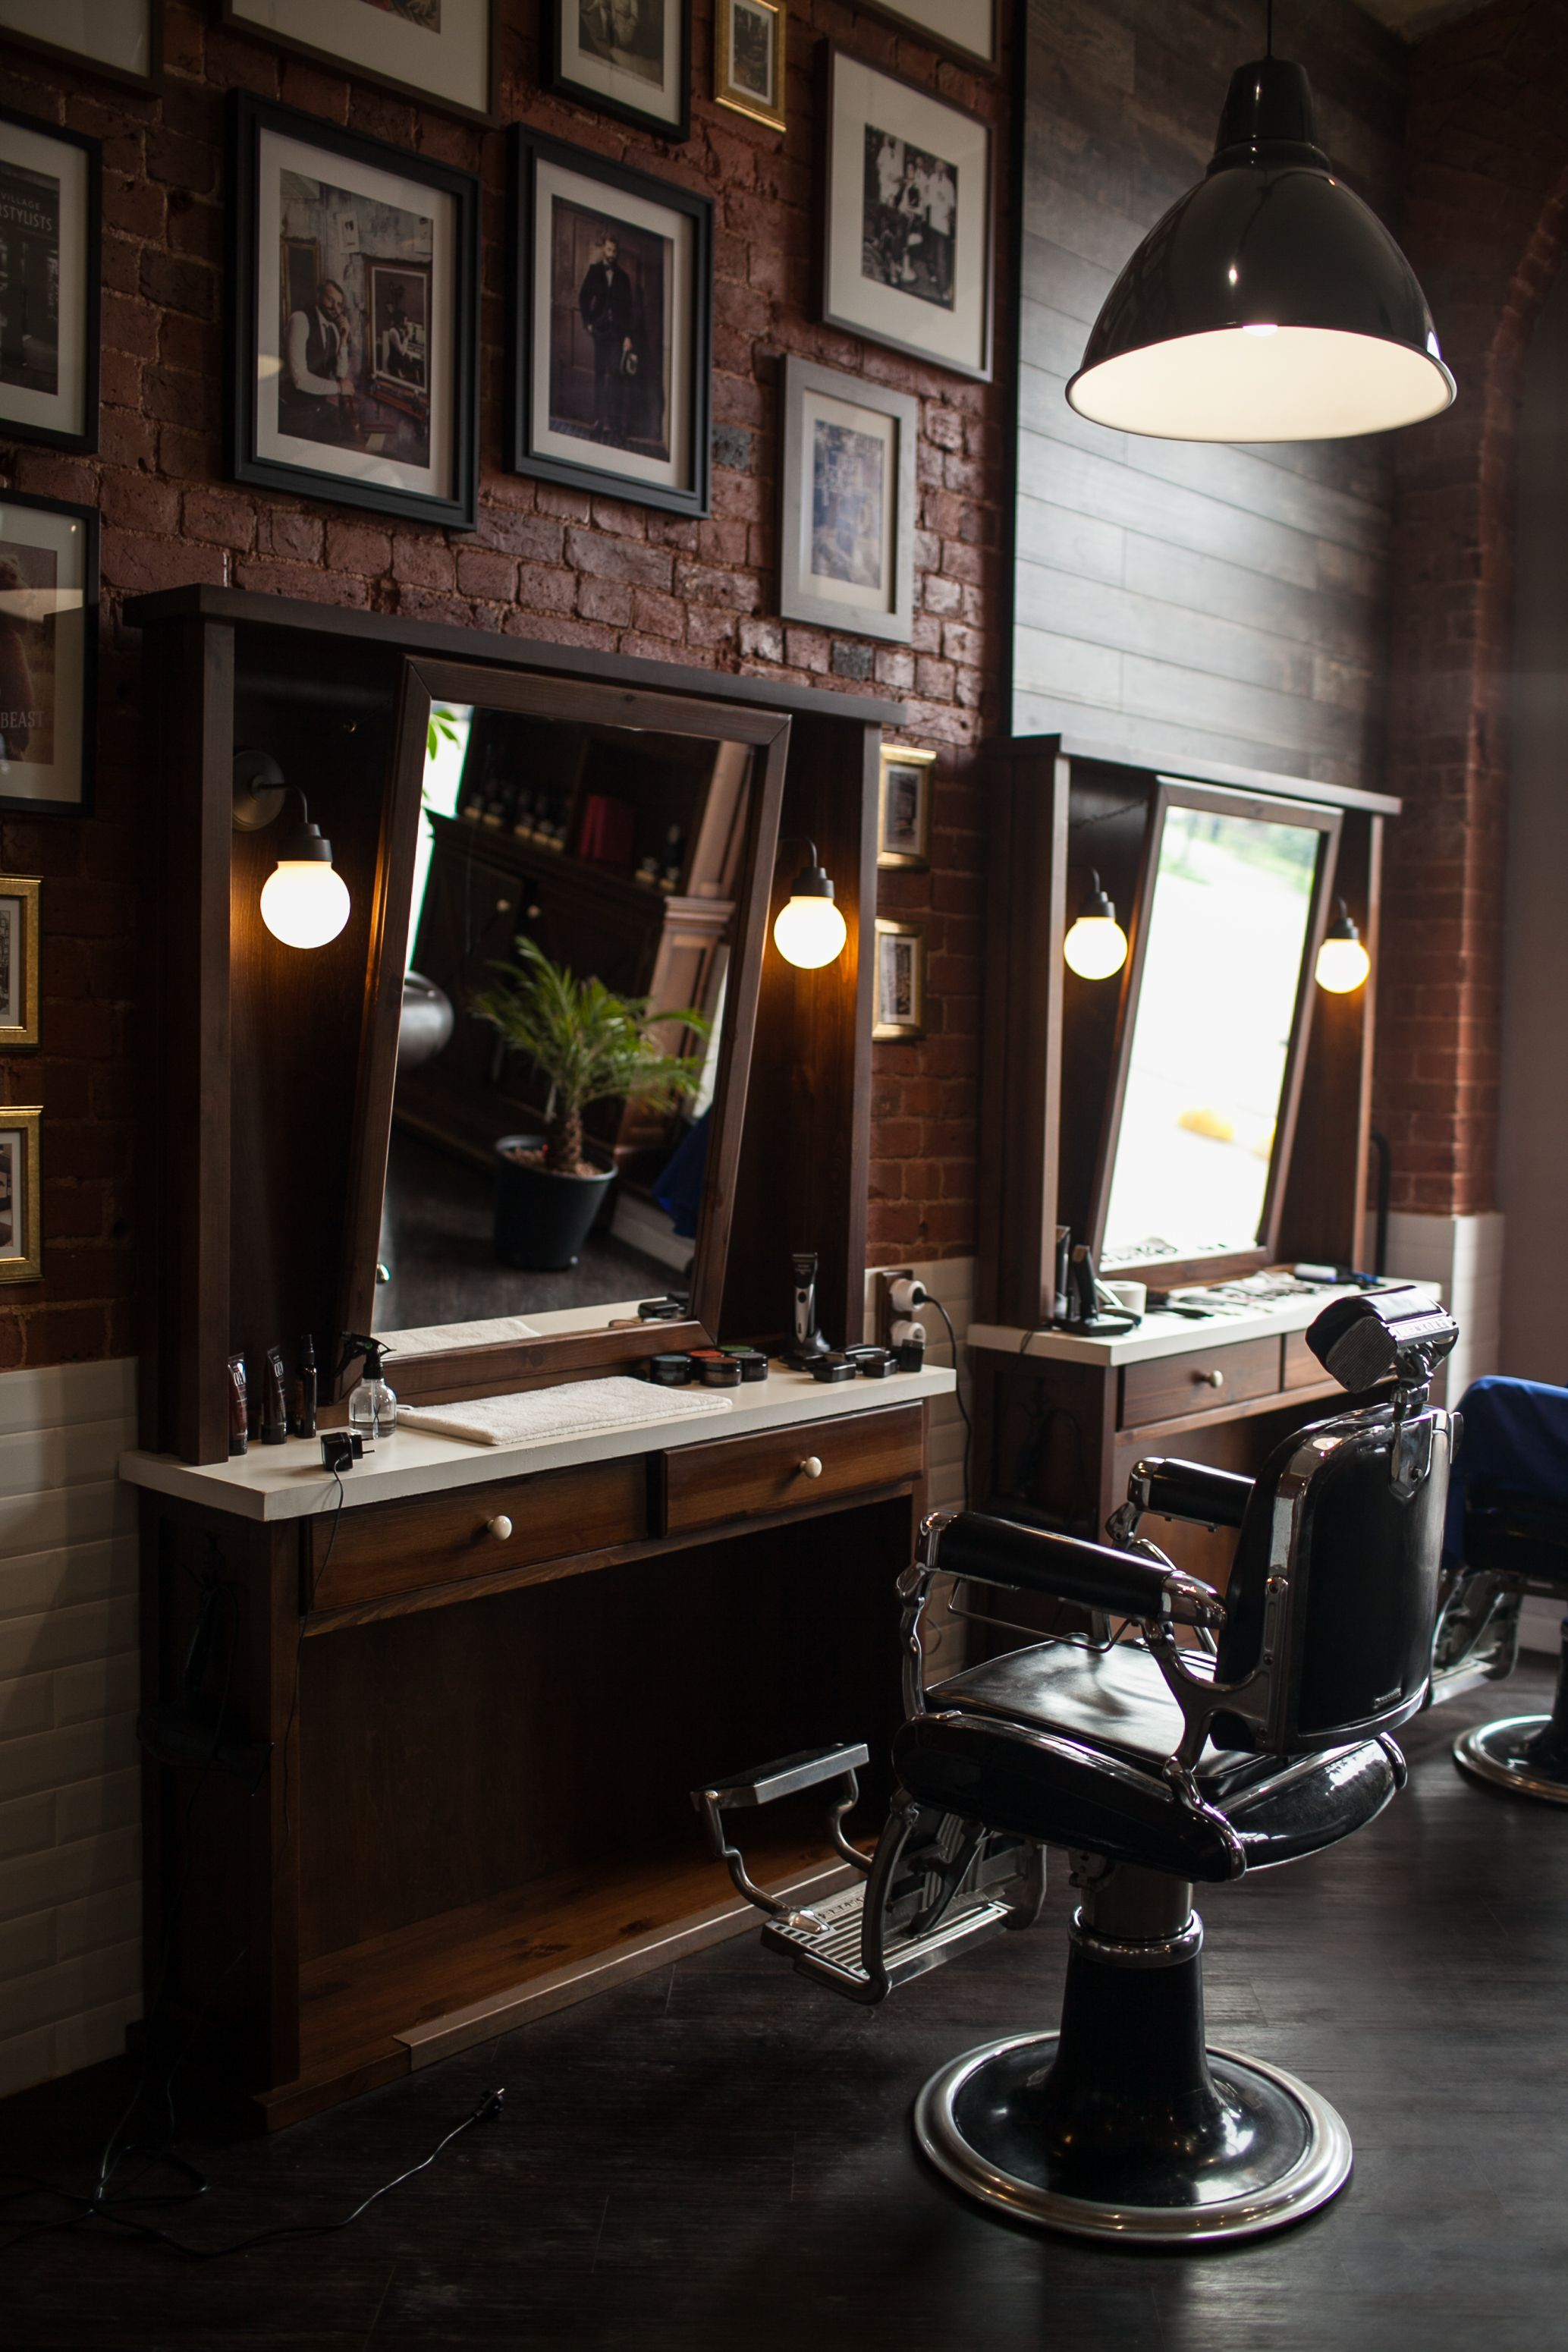 Communication on this topic: Top 80 Best Barber Shop Design Ideas , top-80-best-barber-shop-design-ideas/